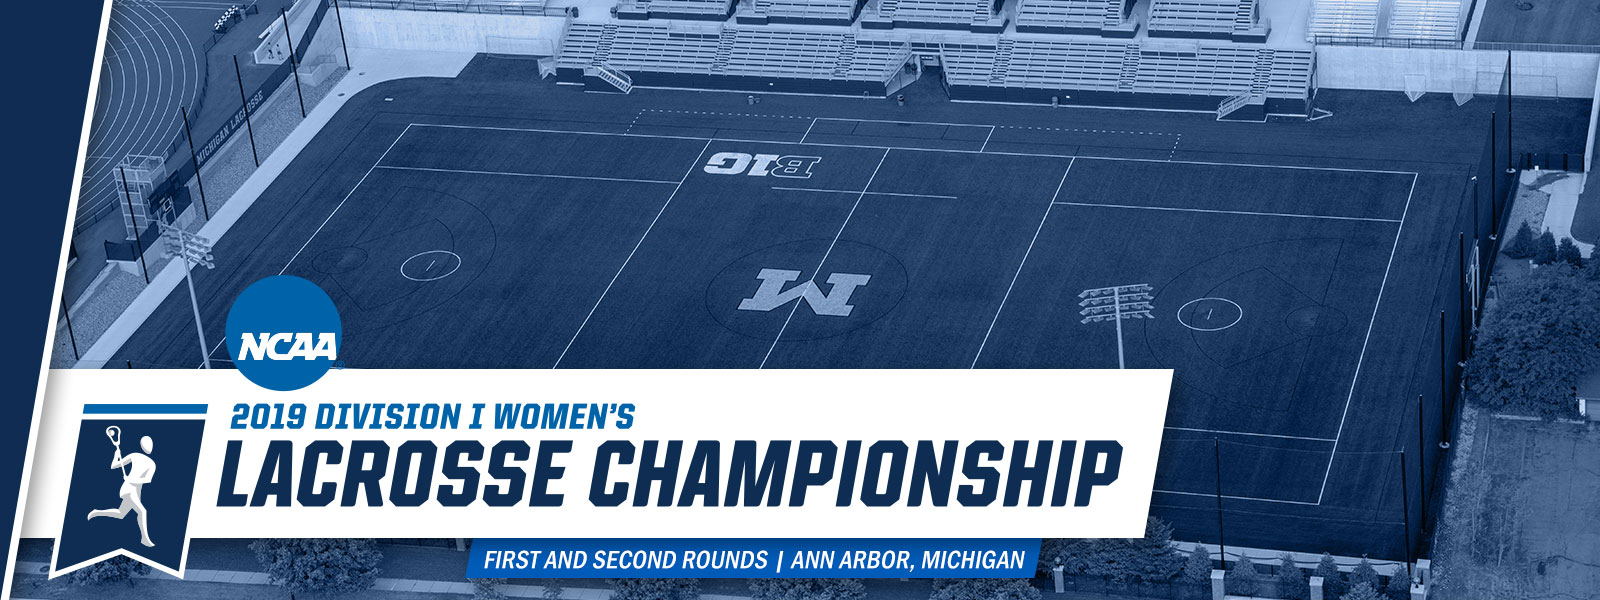 e95180620ad 2019 NCAA Women s Lacrosse First and Second Rounds - University of Michigan  Athletics